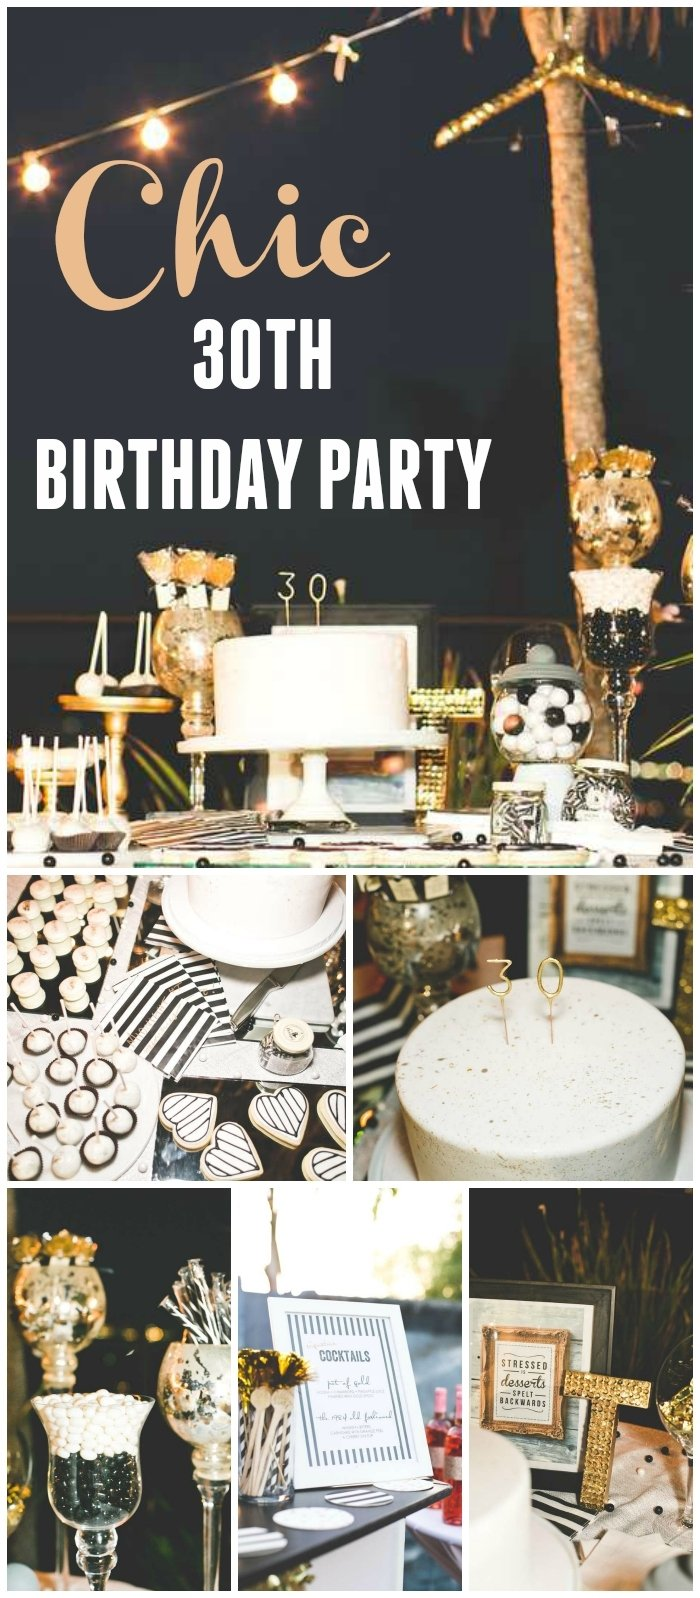 10 Awesome Adult 30Th Birthday Party Ideas stripes glitter birthday chic black white gold 30th birthday 2020